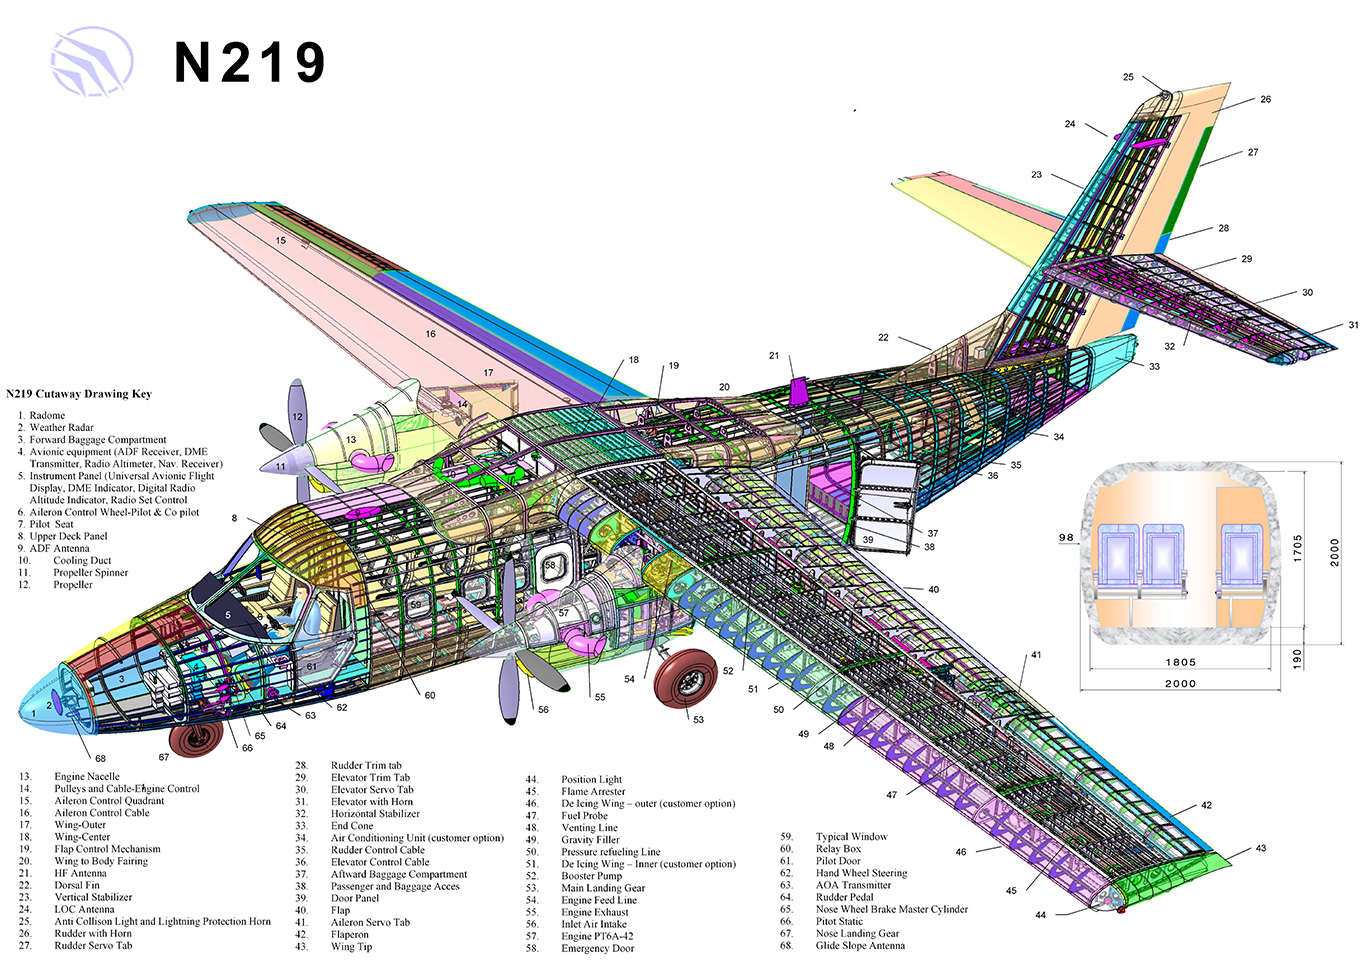 With the CASA C-212 Aviocar as its benchmark, DI enlisted help from the Industry Ministry in 2011 to complete a prototype for Indonesia's very own short-takeoff-and-landing (STOL) aircraft N-219. It closely collaborated with LAPAN in designing the aircraft's materials and components. (Indonesian Aerospace)